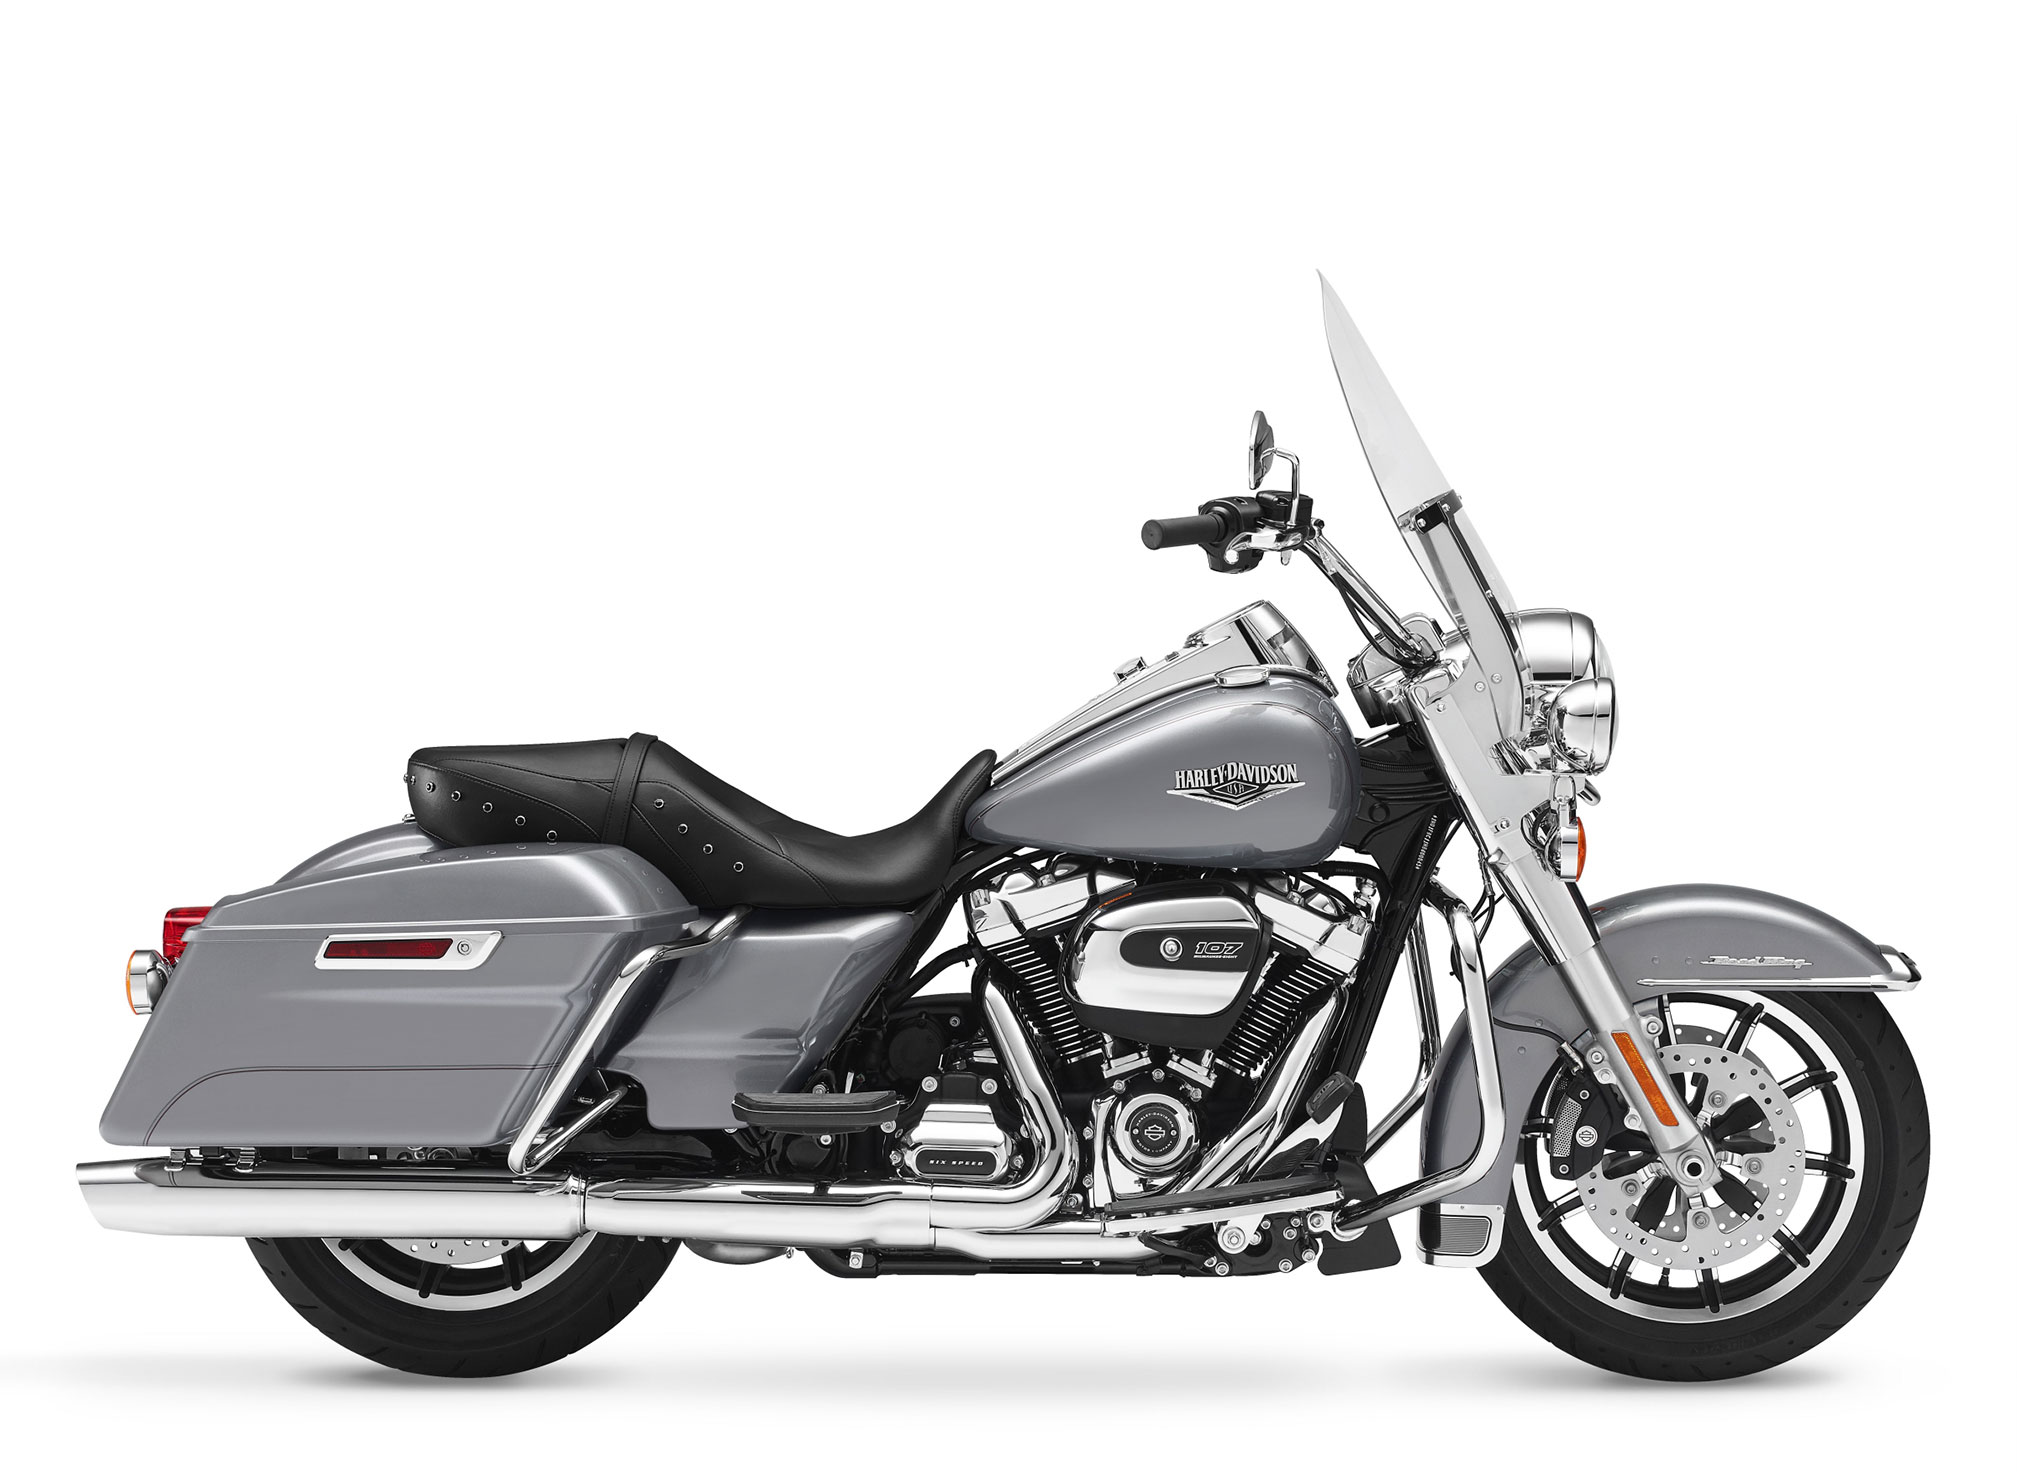 2017 HARLEY DAVIDSON ROAD KING